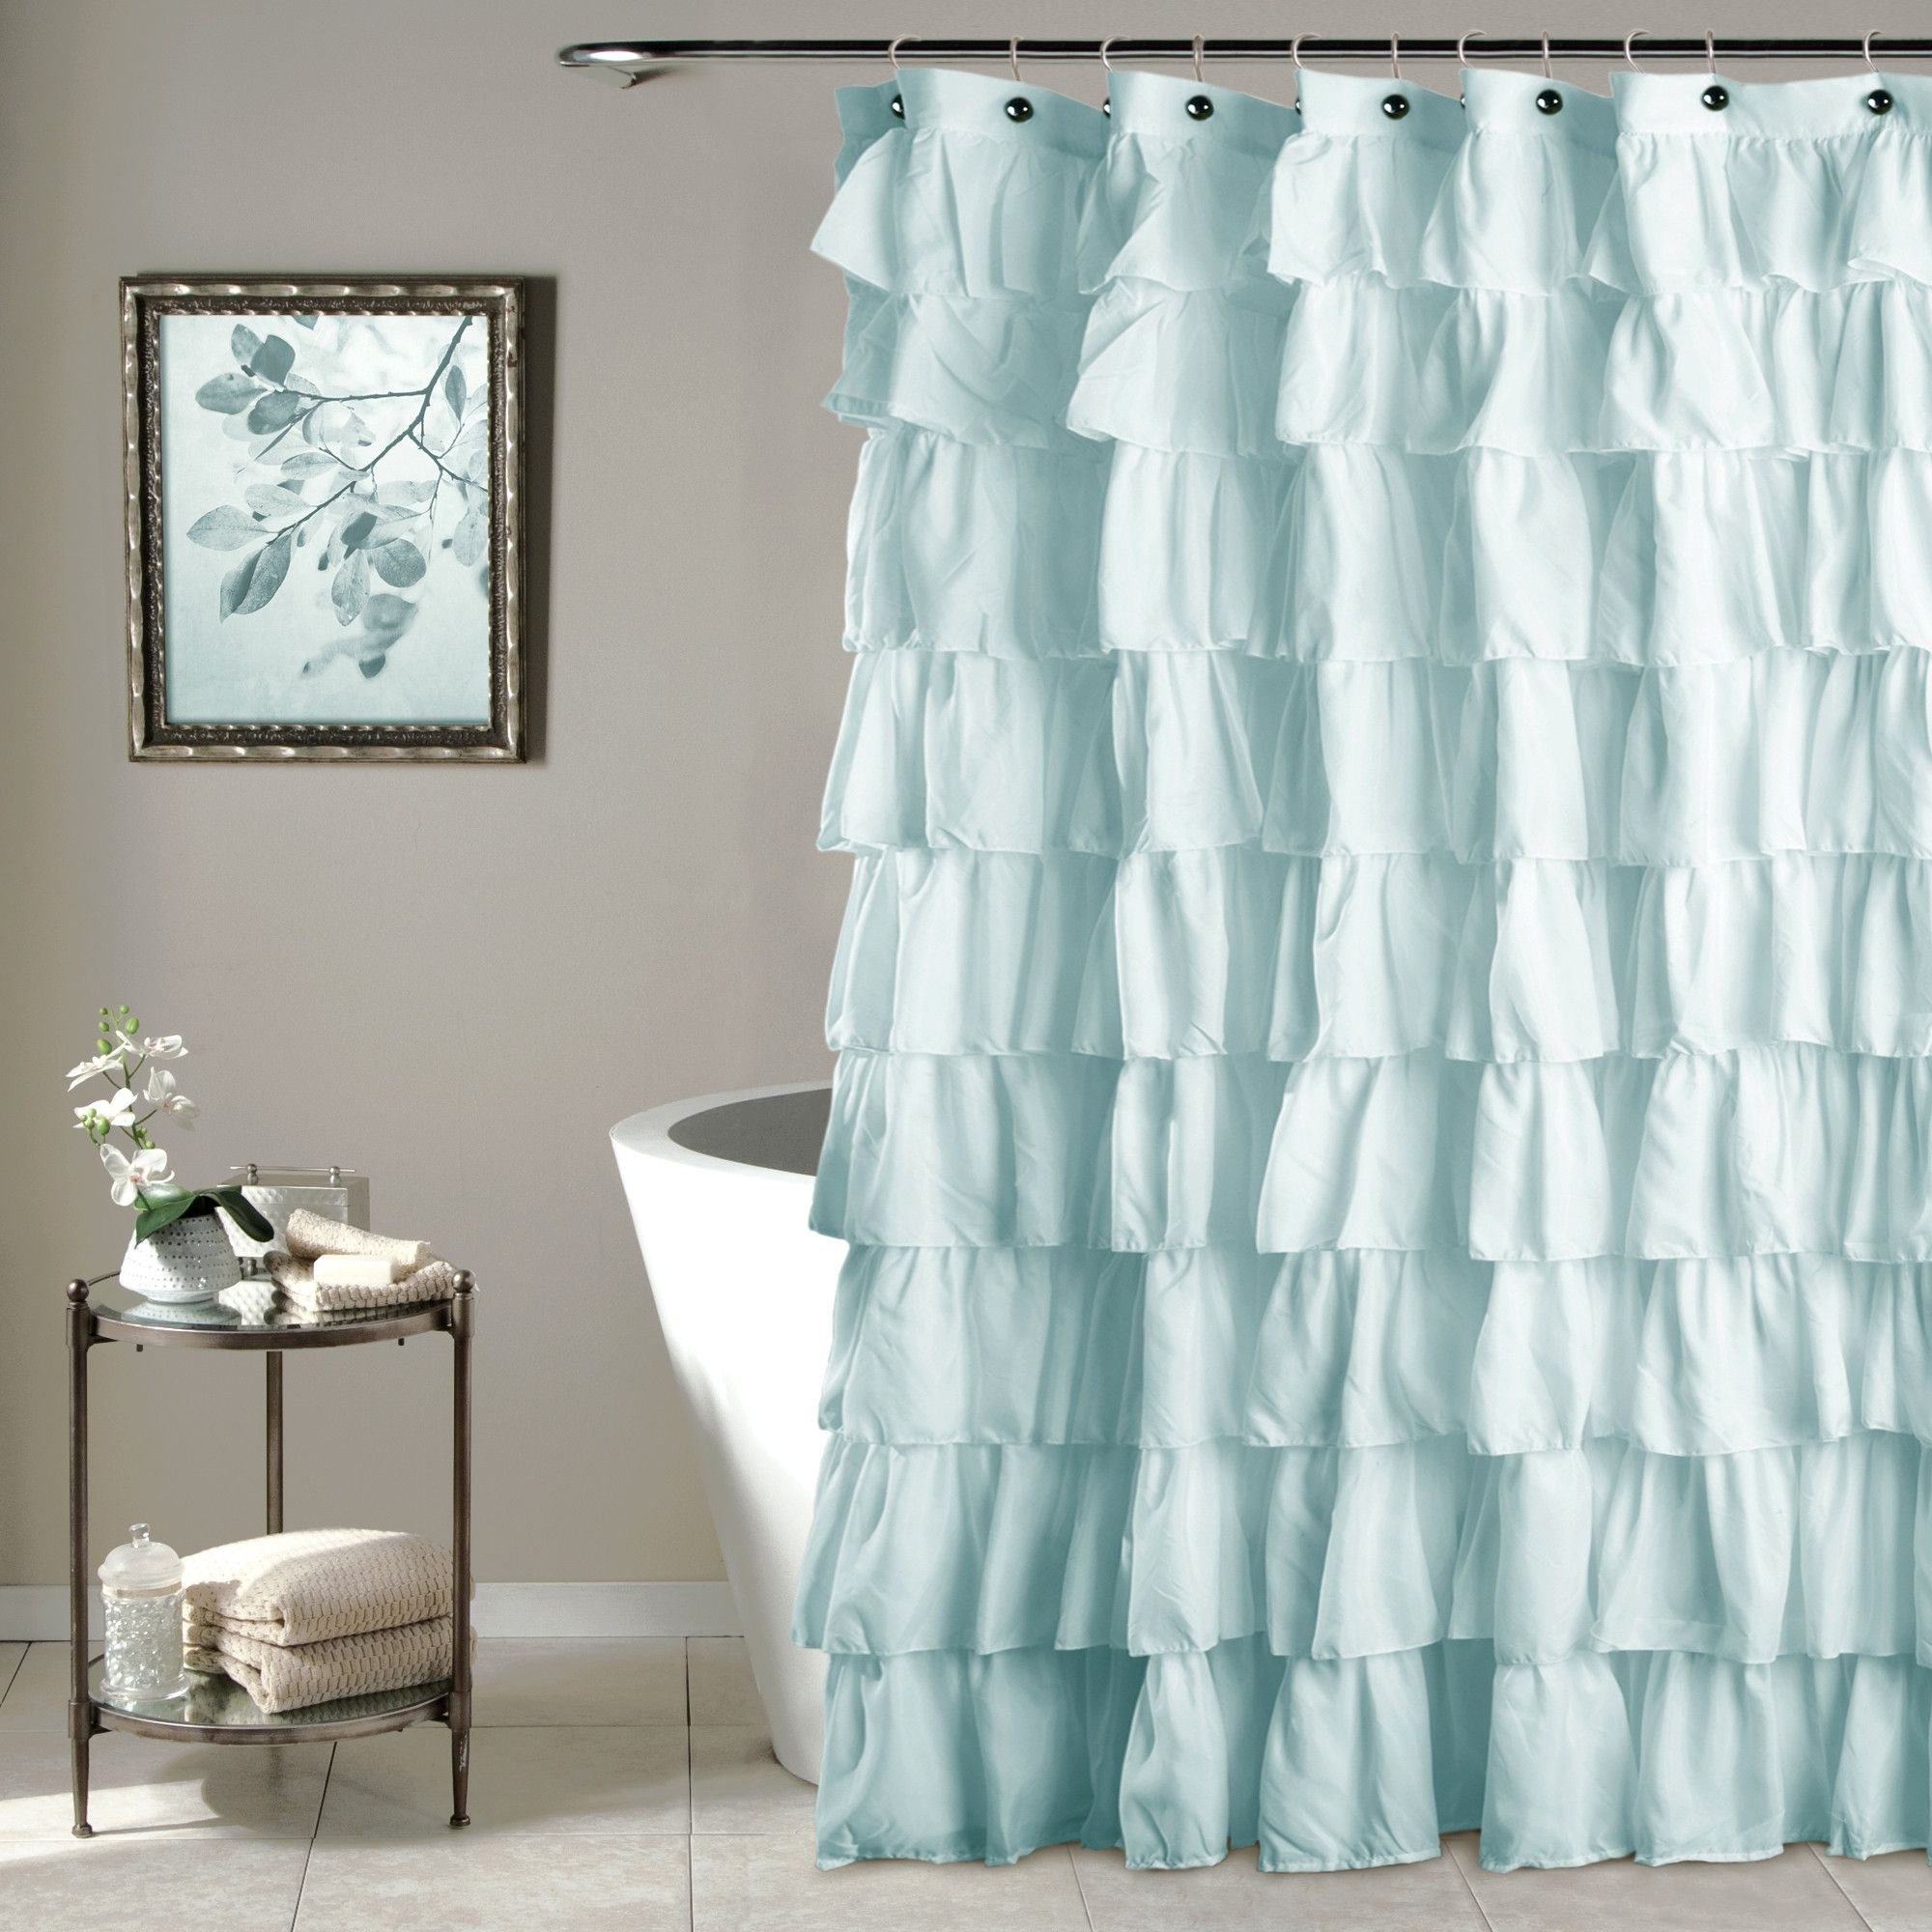 Ruffle Shower Curtain Ruffle Shower Curtains Curtains Shabby Chic Shower Curtain